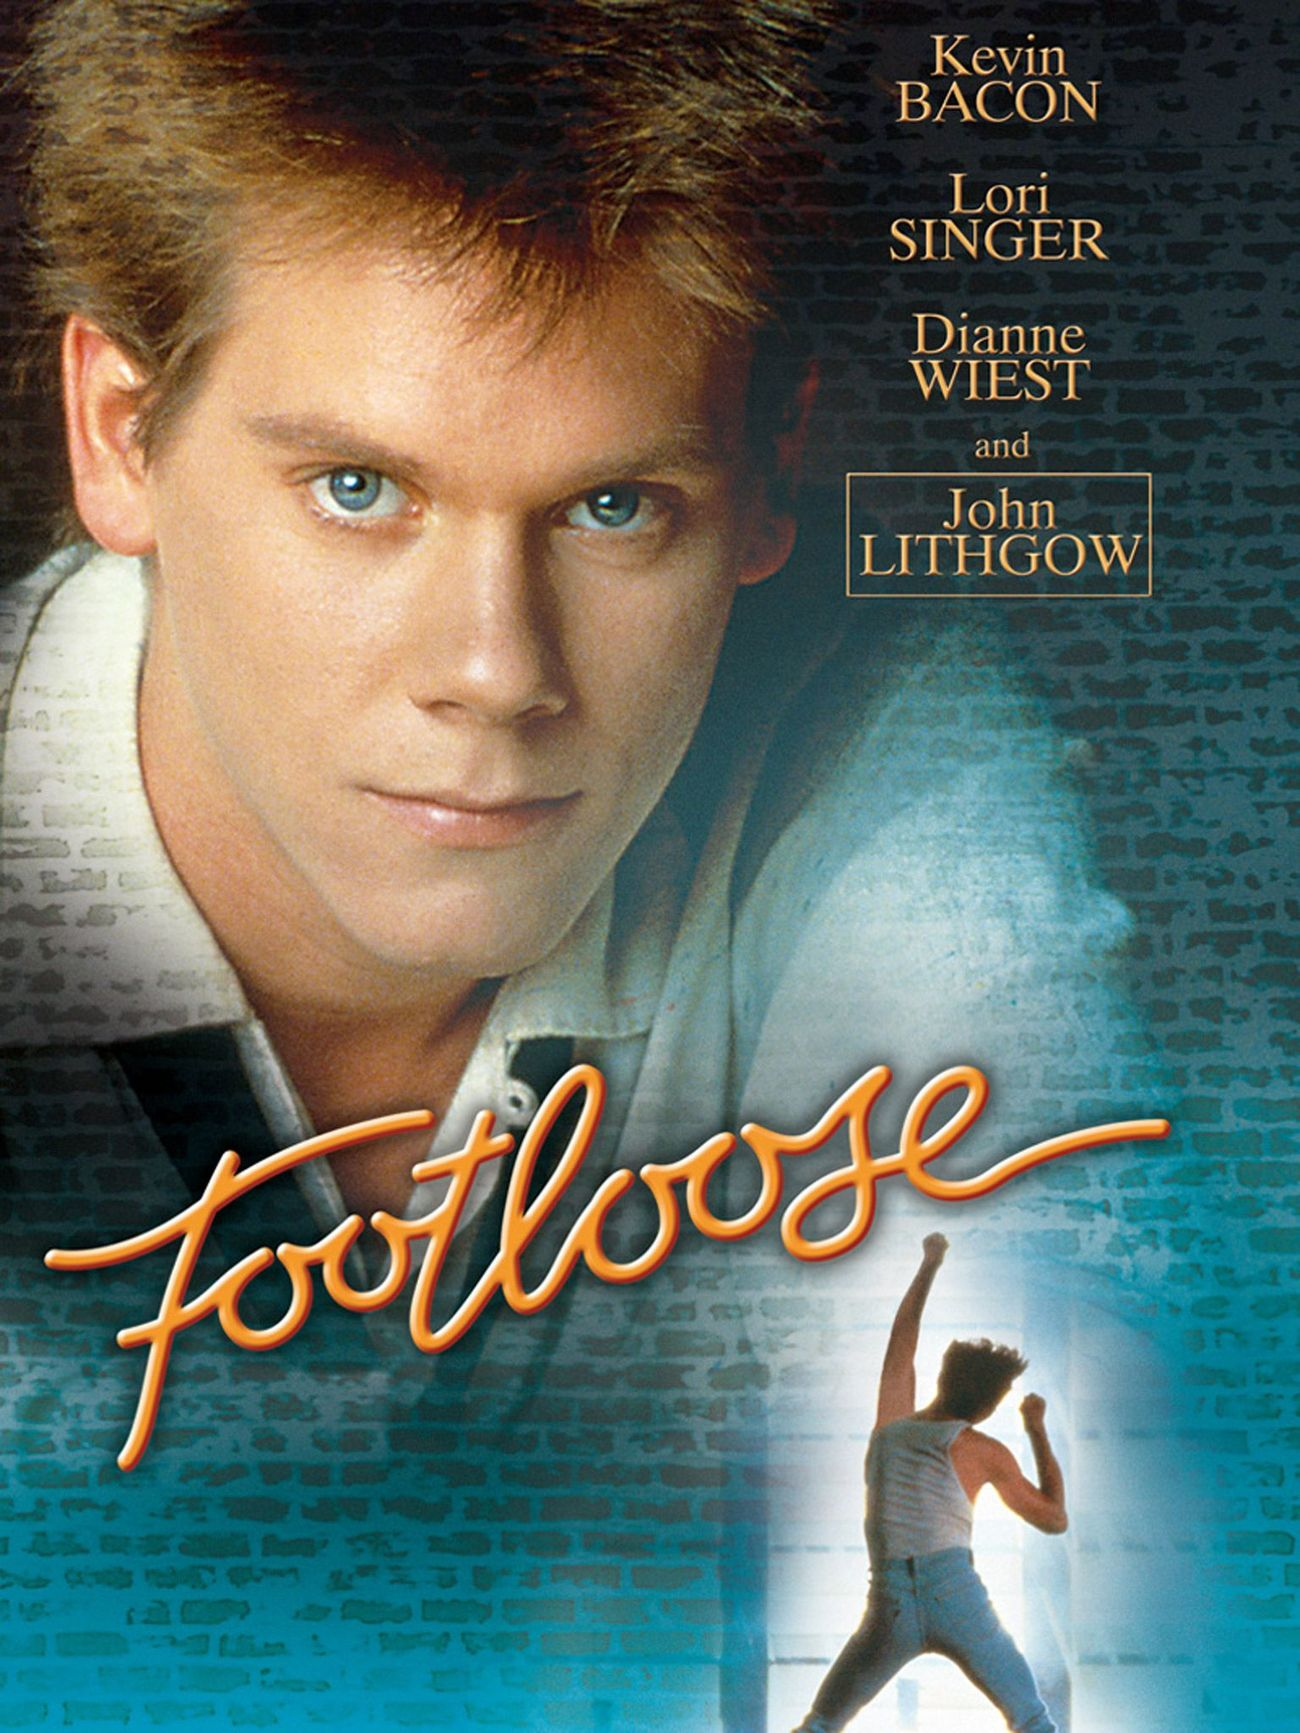 Watch Movie 'Footloose' This Weekend